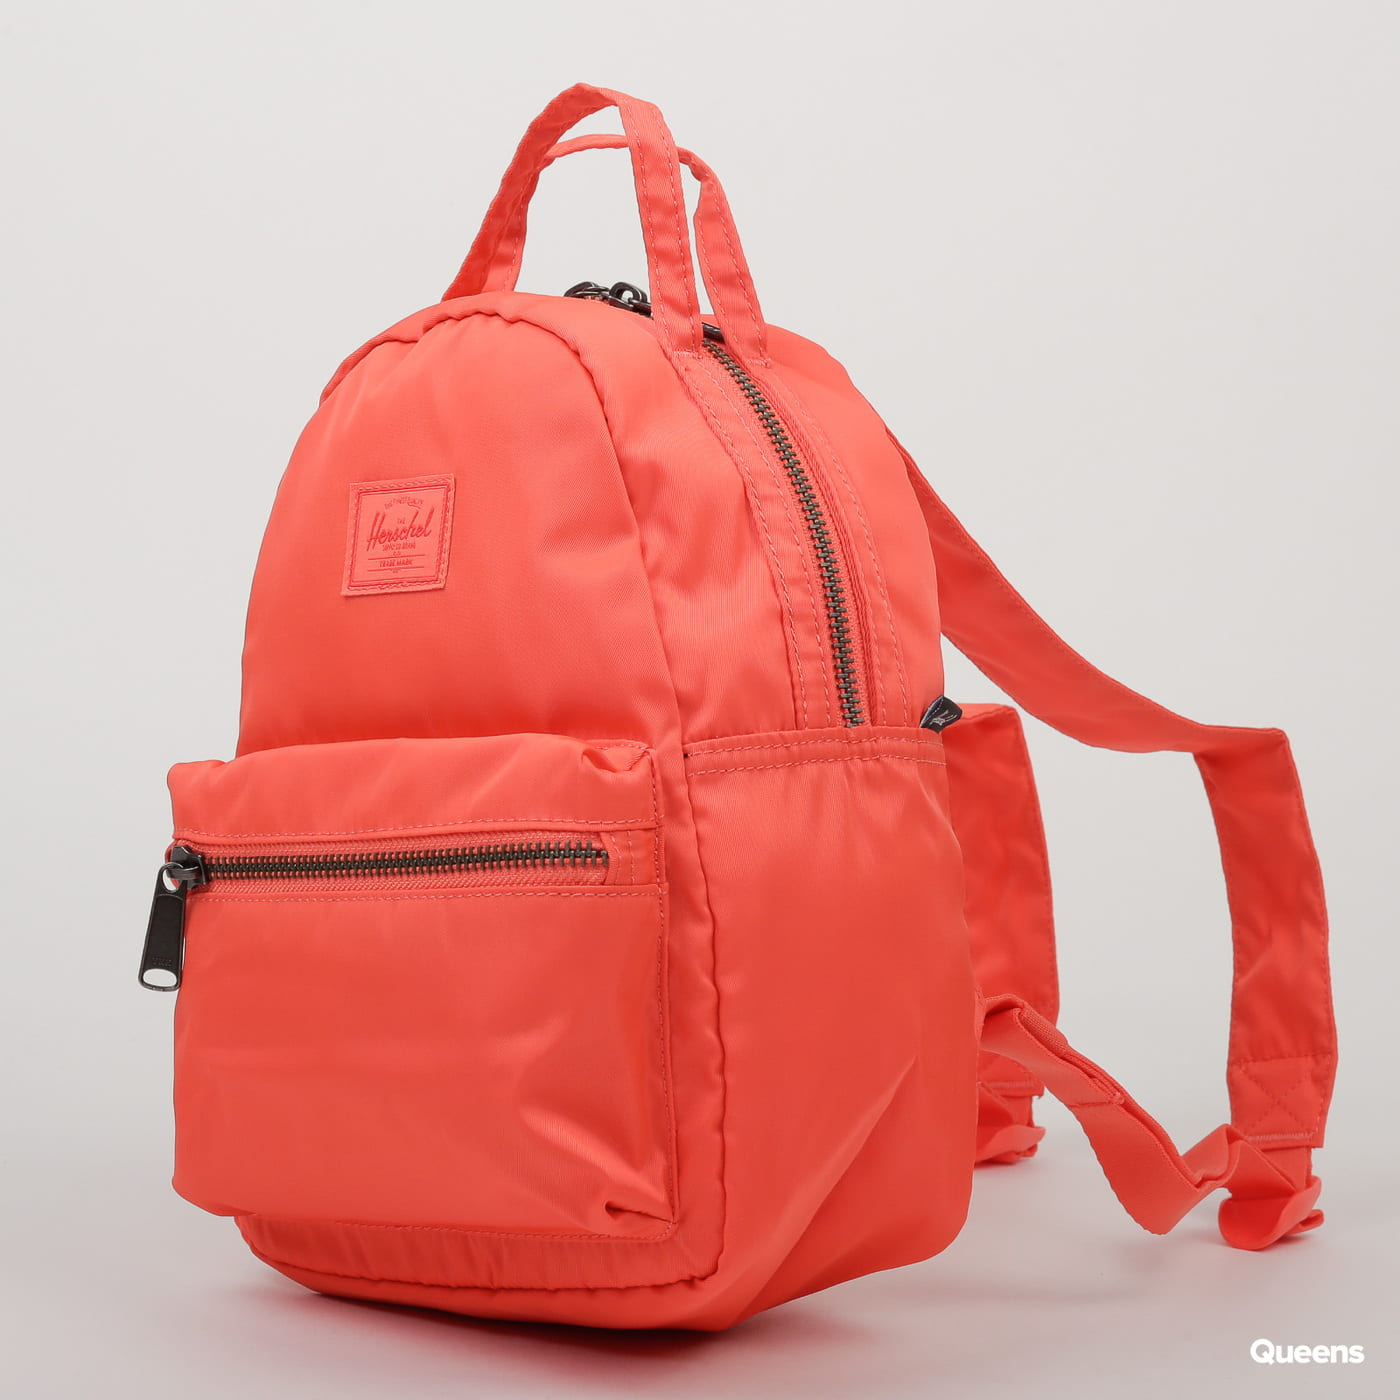 The Herschel Supply CO. Nova Mini Backpack light red